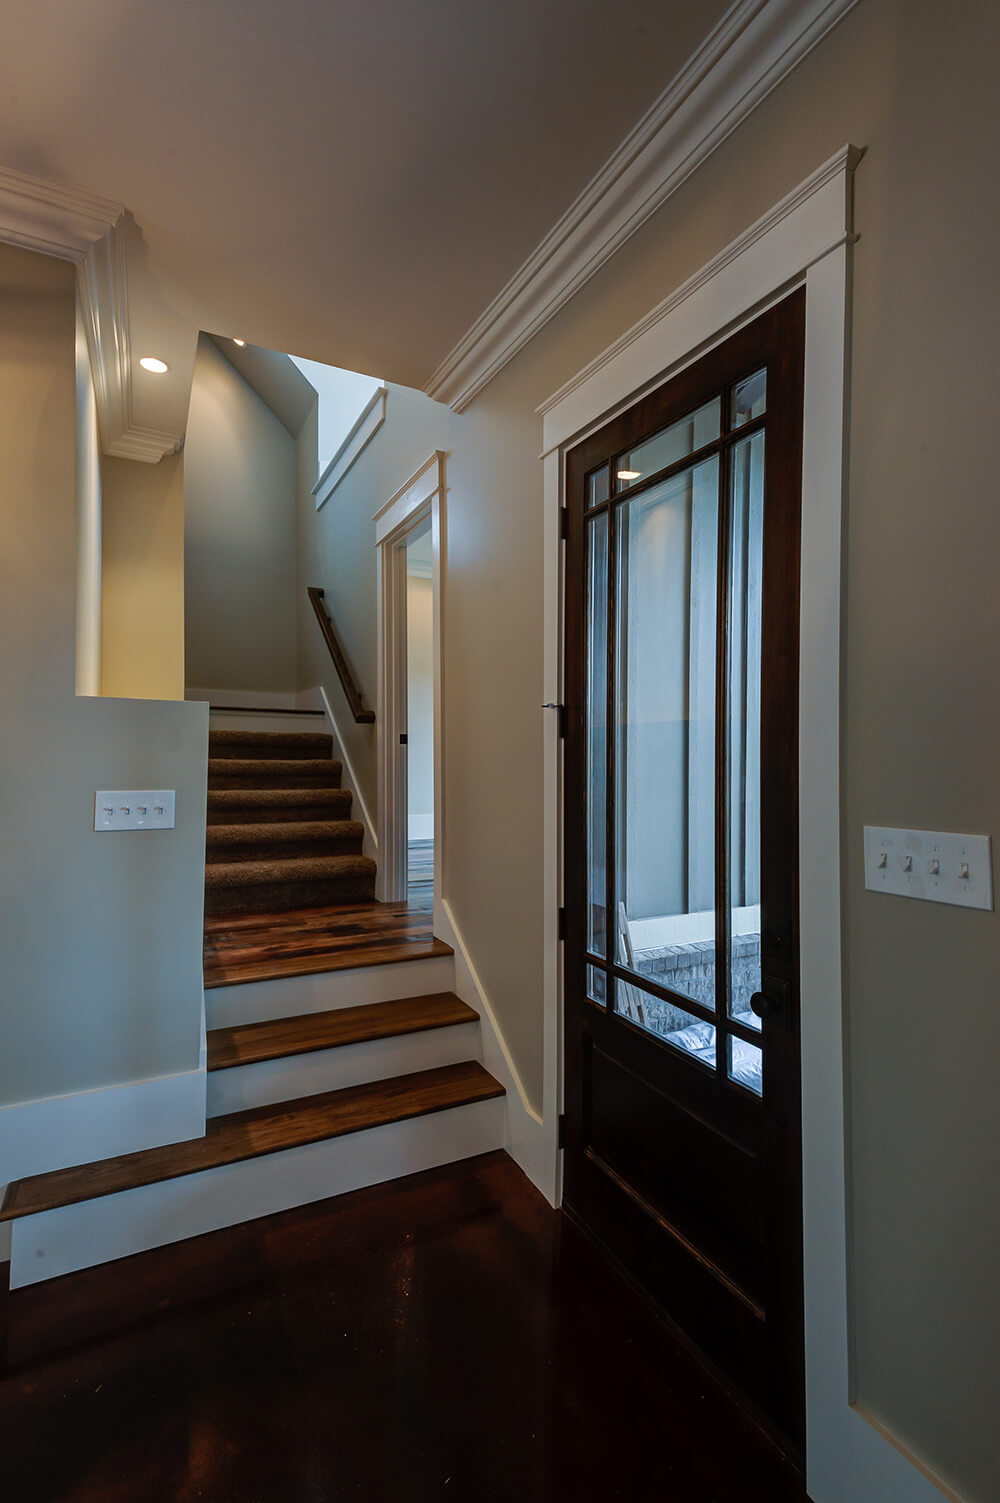 The stairs lead up to the second floor with a landing that opens in the study. The second floor consists of a bonus room that runs along the side of the house over the garage and bedrooms.